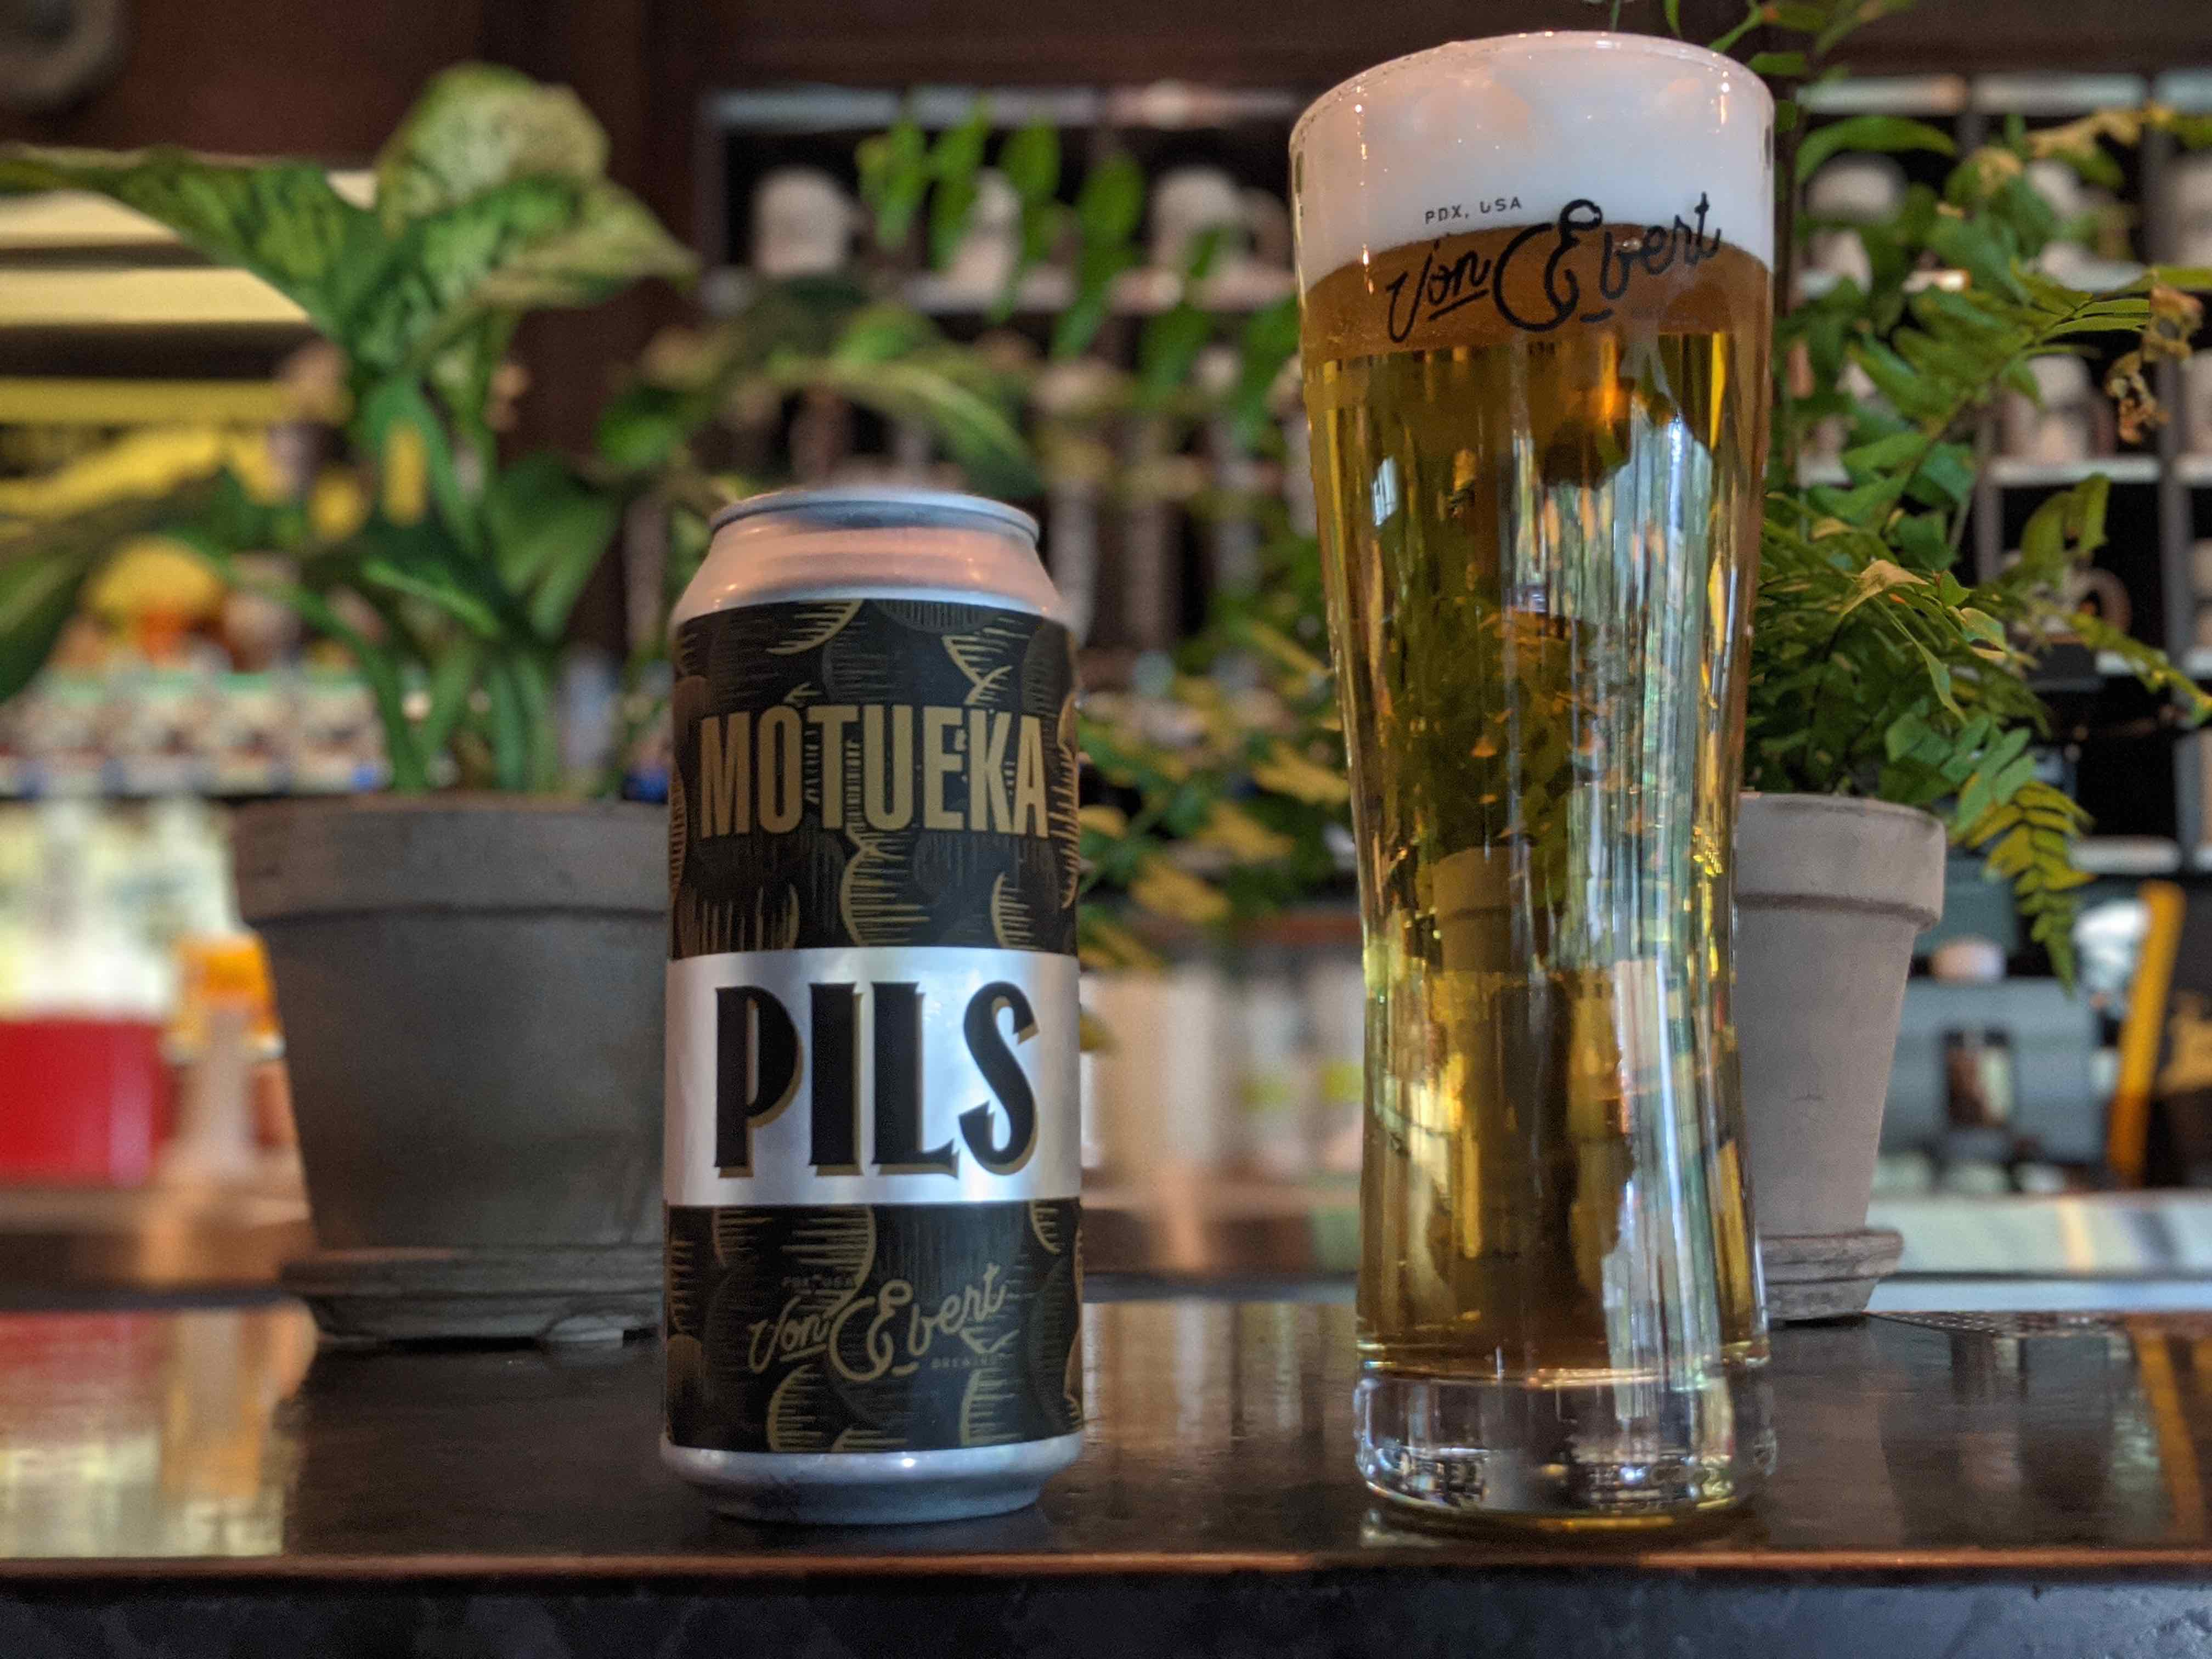 image of Motueka Pils courtesy of Von Ebert Brewing